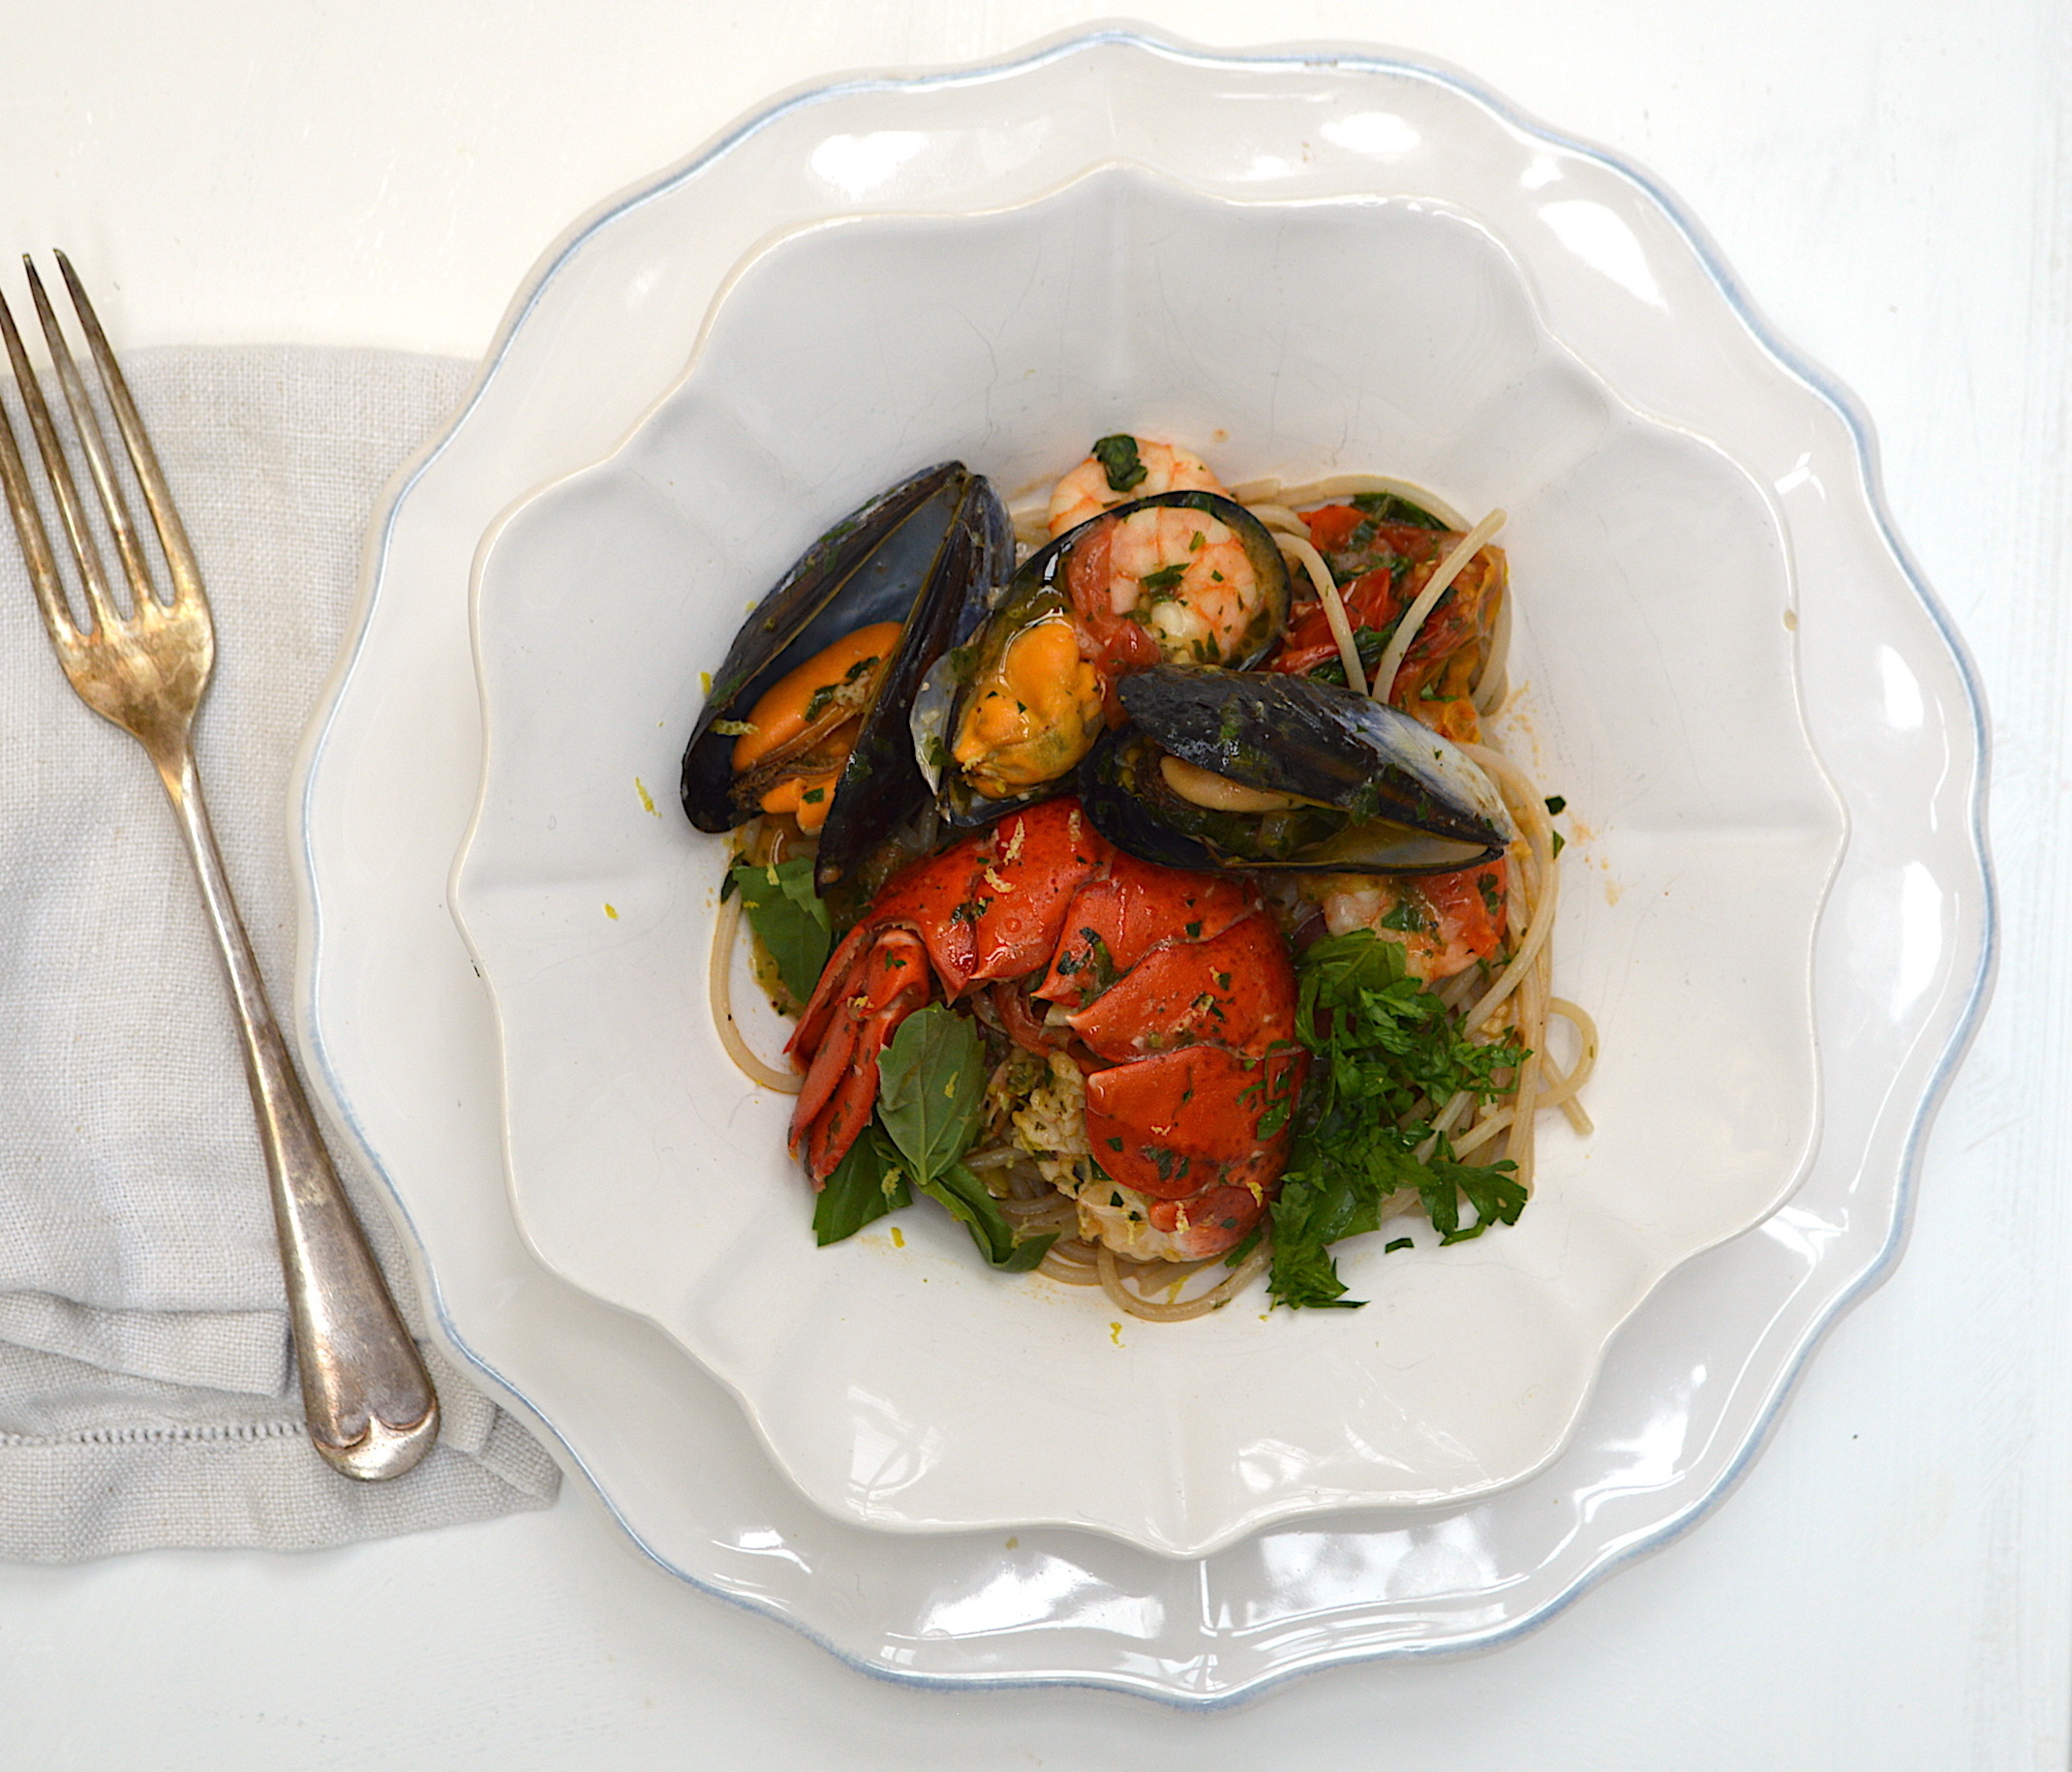 I made this recently for the amazing Laura Fantucci from  Wardrobe Icons for a summer dinner party. She requested this recipe which mainly originates from Campania and uses lots of crustaceans with scoglio meaning rock. Laura wanted to throw some lobster into the mix which adds another depth of flavour from their shells but you don't have to if you want to keep costs down. If not using you can just swap the lobby for more shellfish. There is something so rustic and beautiful about this dish that can't fail to whisk you off to the Italian Riviera. Make sure you throw on some jazz while you're cooking!  Serves 2  Ingredients:  160g dried linguine pasta / gluten free is good too!  275g baby plum tomatoes, halved  2 large garlic cloves, diced  1 banana shallot, diced  150g king prawns (shell on or off)  3 tbsp chopped flat leaf parsley  1 tsp dried oregano  large handful fresh basil, roughly torn  3 tbsp extra virgin olive oil  2 handfuls mussels  2 handful clams  1 lobster tail, sliced in half  5-6 tbsp hot vegetable stock  1/2 glass dry white wine  sea salt and black pepper  zest and juice of half a lemon  Prepare everything before you start to cook to make the whole process run smoothly. Set a large saucepan of salted water to boil and set a frying pan with a lid to a medium to high heat. When the water is boiling add the pasta to cook following the packets instructions and make sure you set a timer to keep track. For perfectly al dente I always take off about two minutes from what the packet says.  While the pasta is cooking you need to start on the sauce. Add the olive oil into the frying pan followed by the diced shallot. Let this soften for 2 minutes before adding in the garlic followed by the plum tomatoes. Stir everything around the pan for two minutes and then add half the parsley, oregano, lobster tail, clams, mussels and white wine. Turn up the heat and allow this to cook for 1 minute and then pour over the stock and cover the pan with the lid. Cook for 2 mi